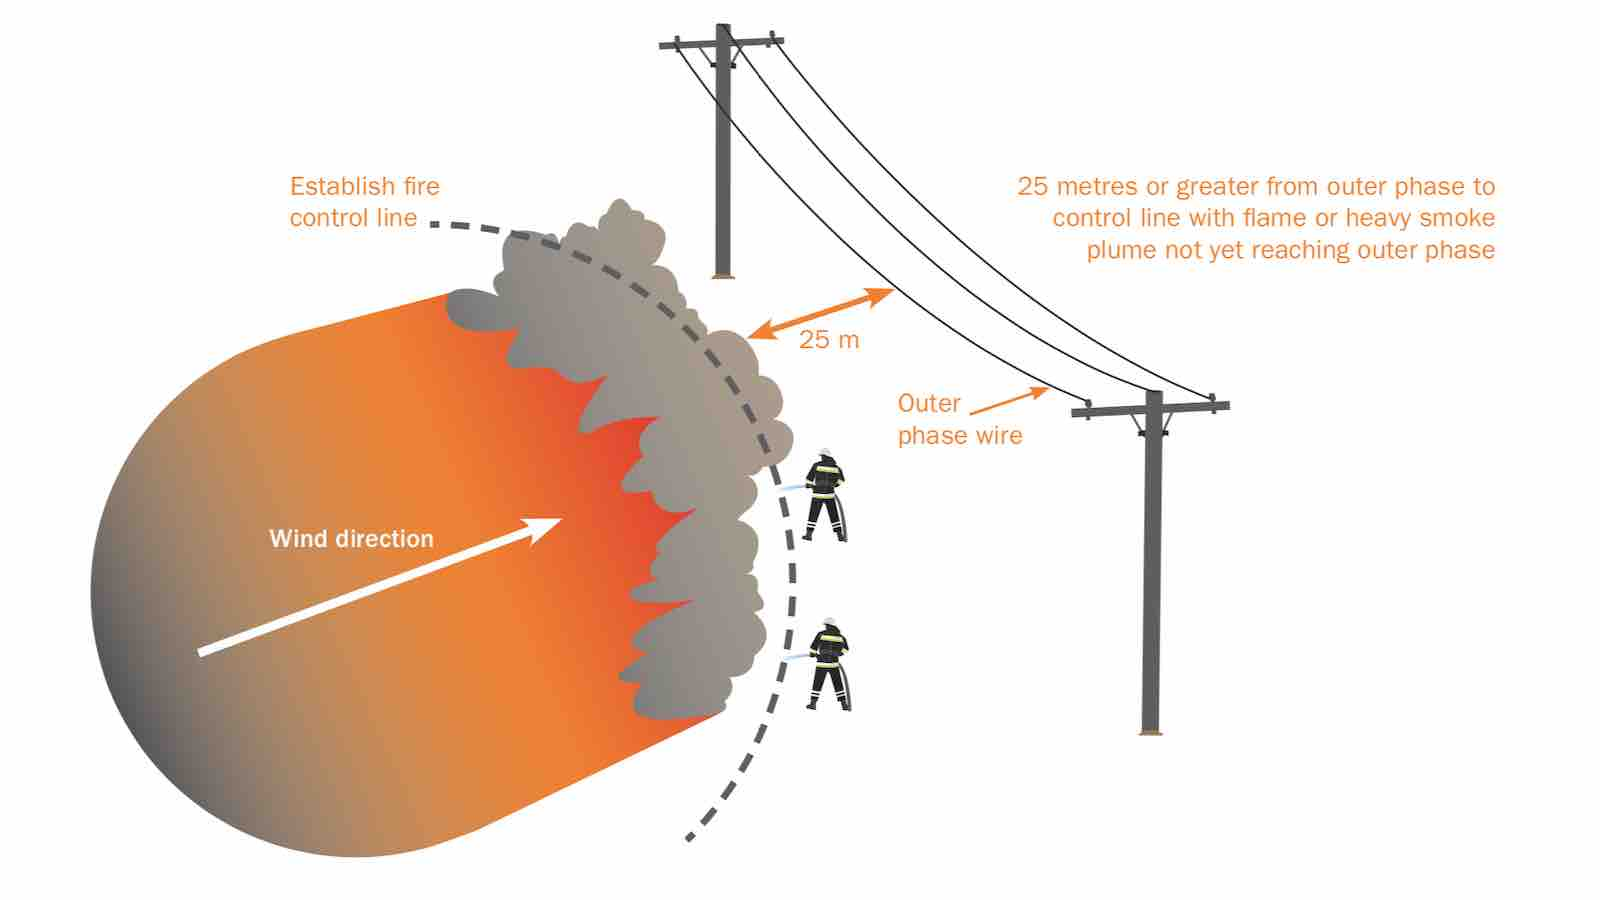 Stay 25m or greater from transmission powerline